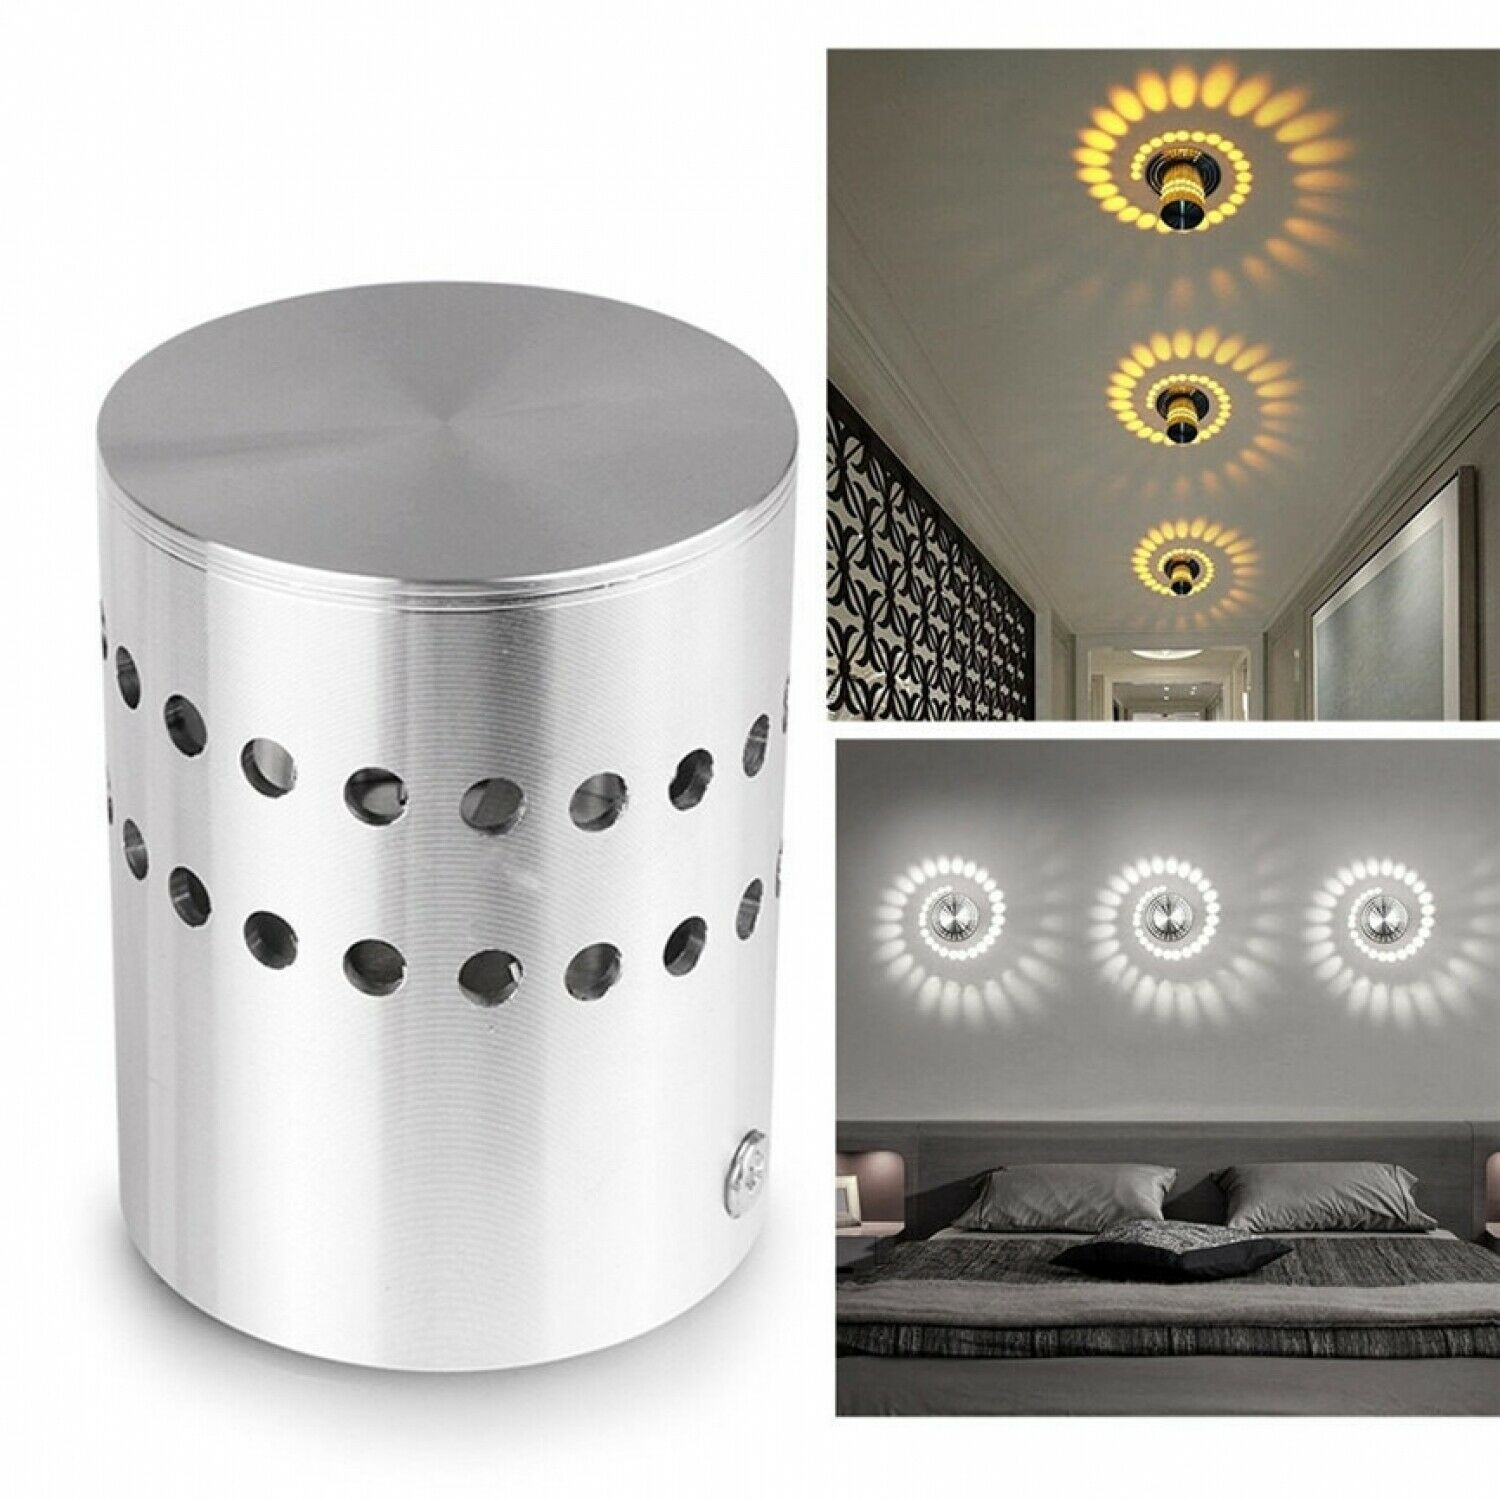 Small LED Wall Light Creative Wall Lamp For Art Gallery Decoration Home Gift